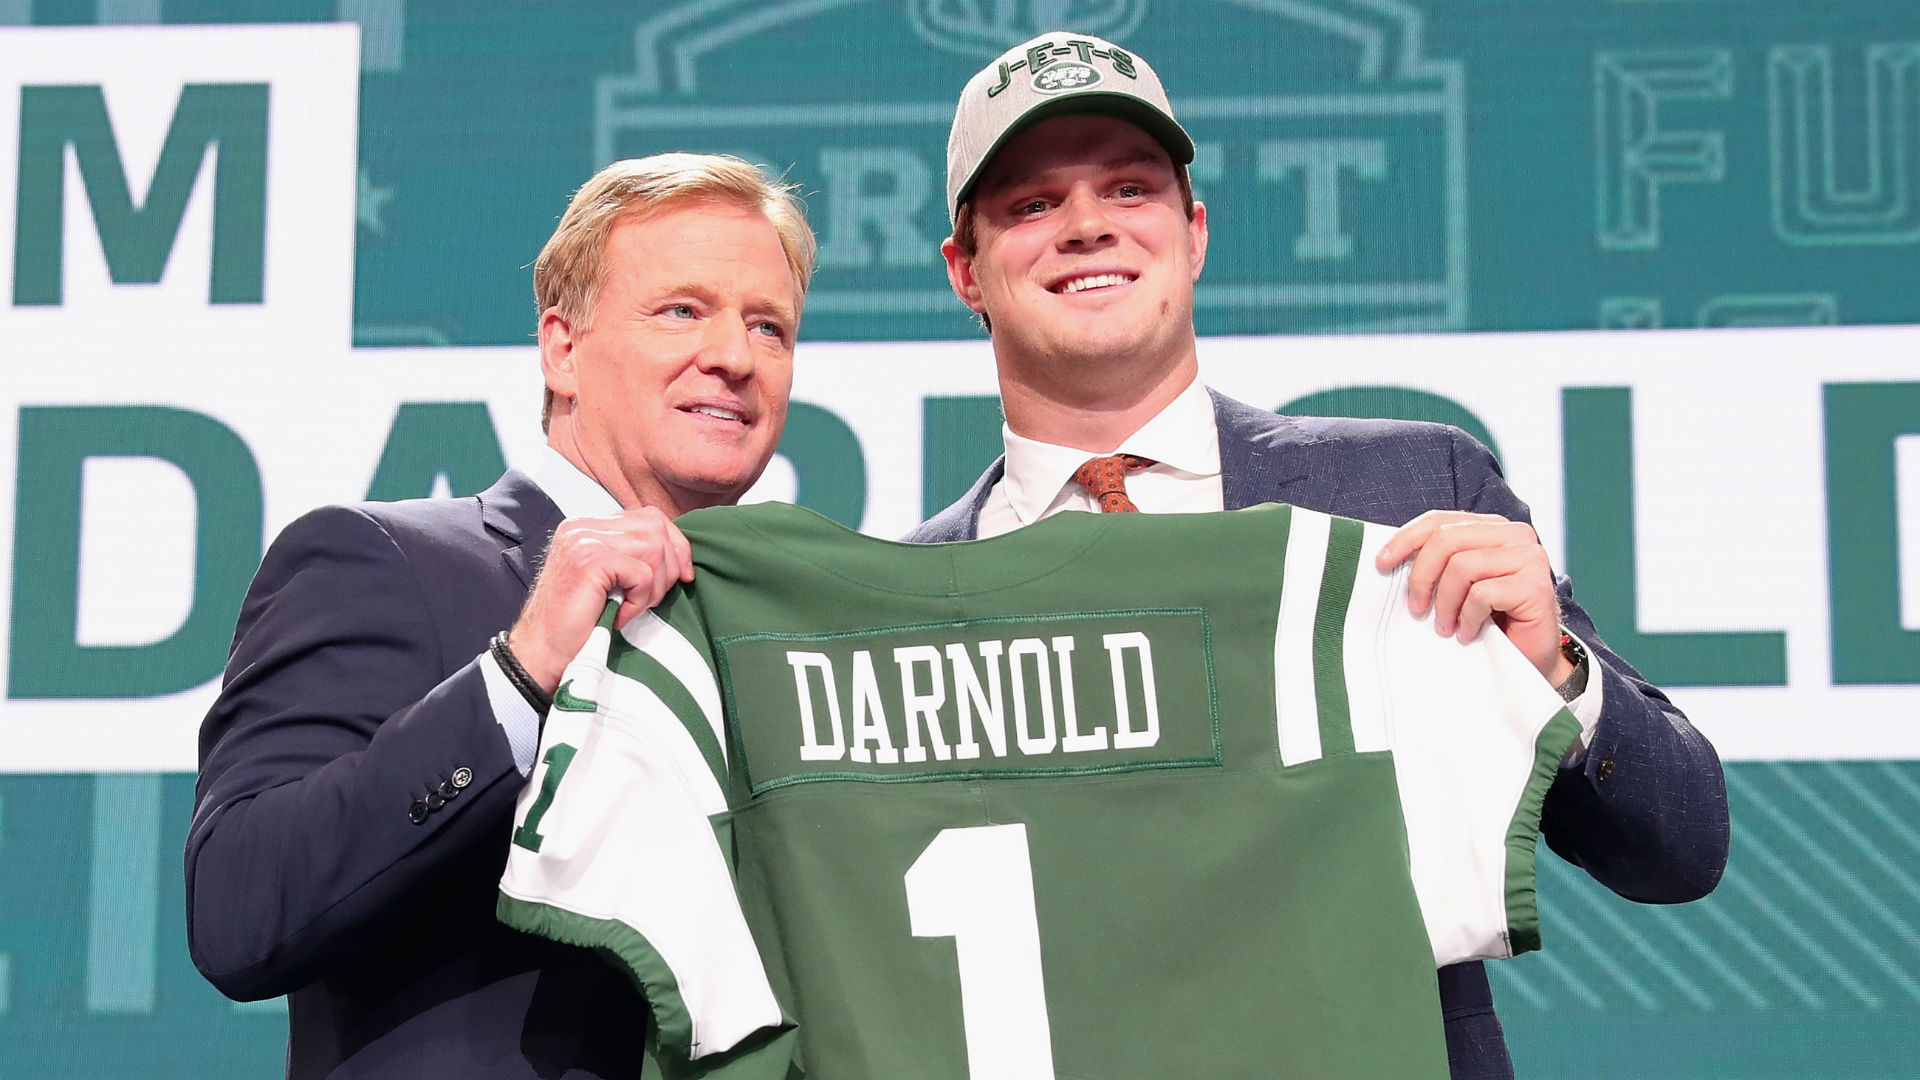 Sam Darnold, Jets agree to four-year deal worth over $30 million